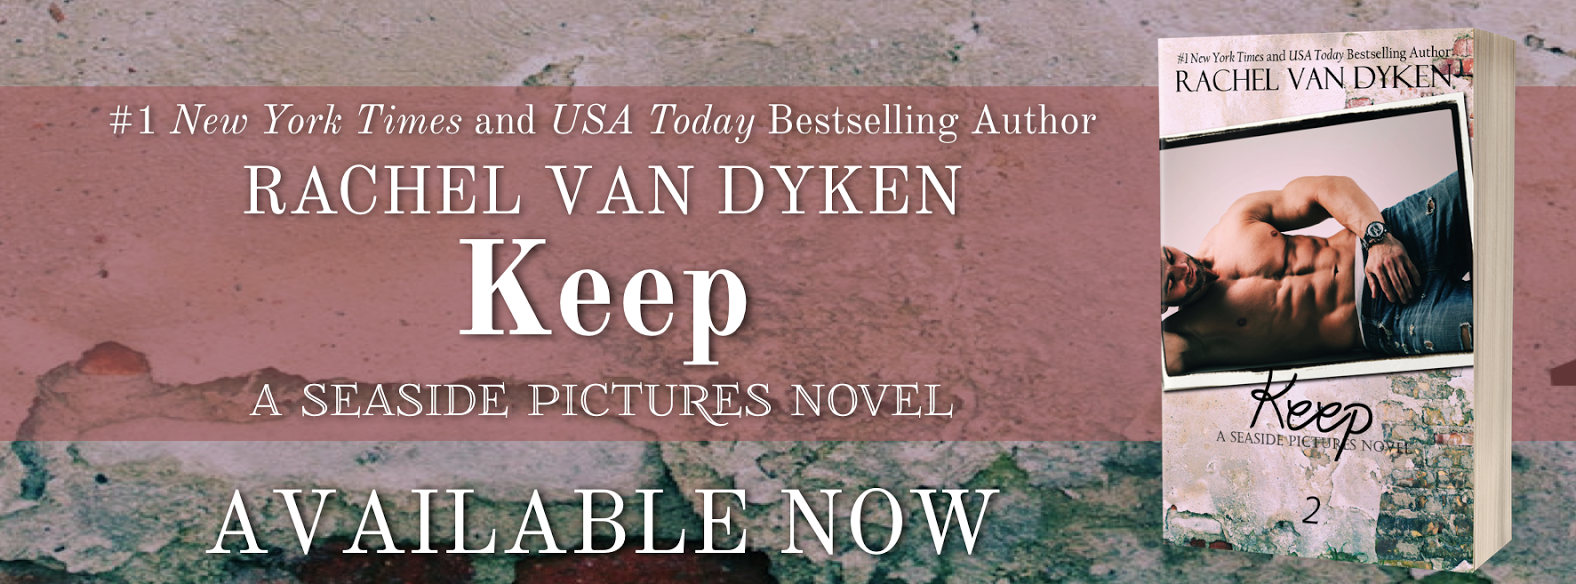 Once Upon A Twilight Book Release Keep By Rachel Van Dyken